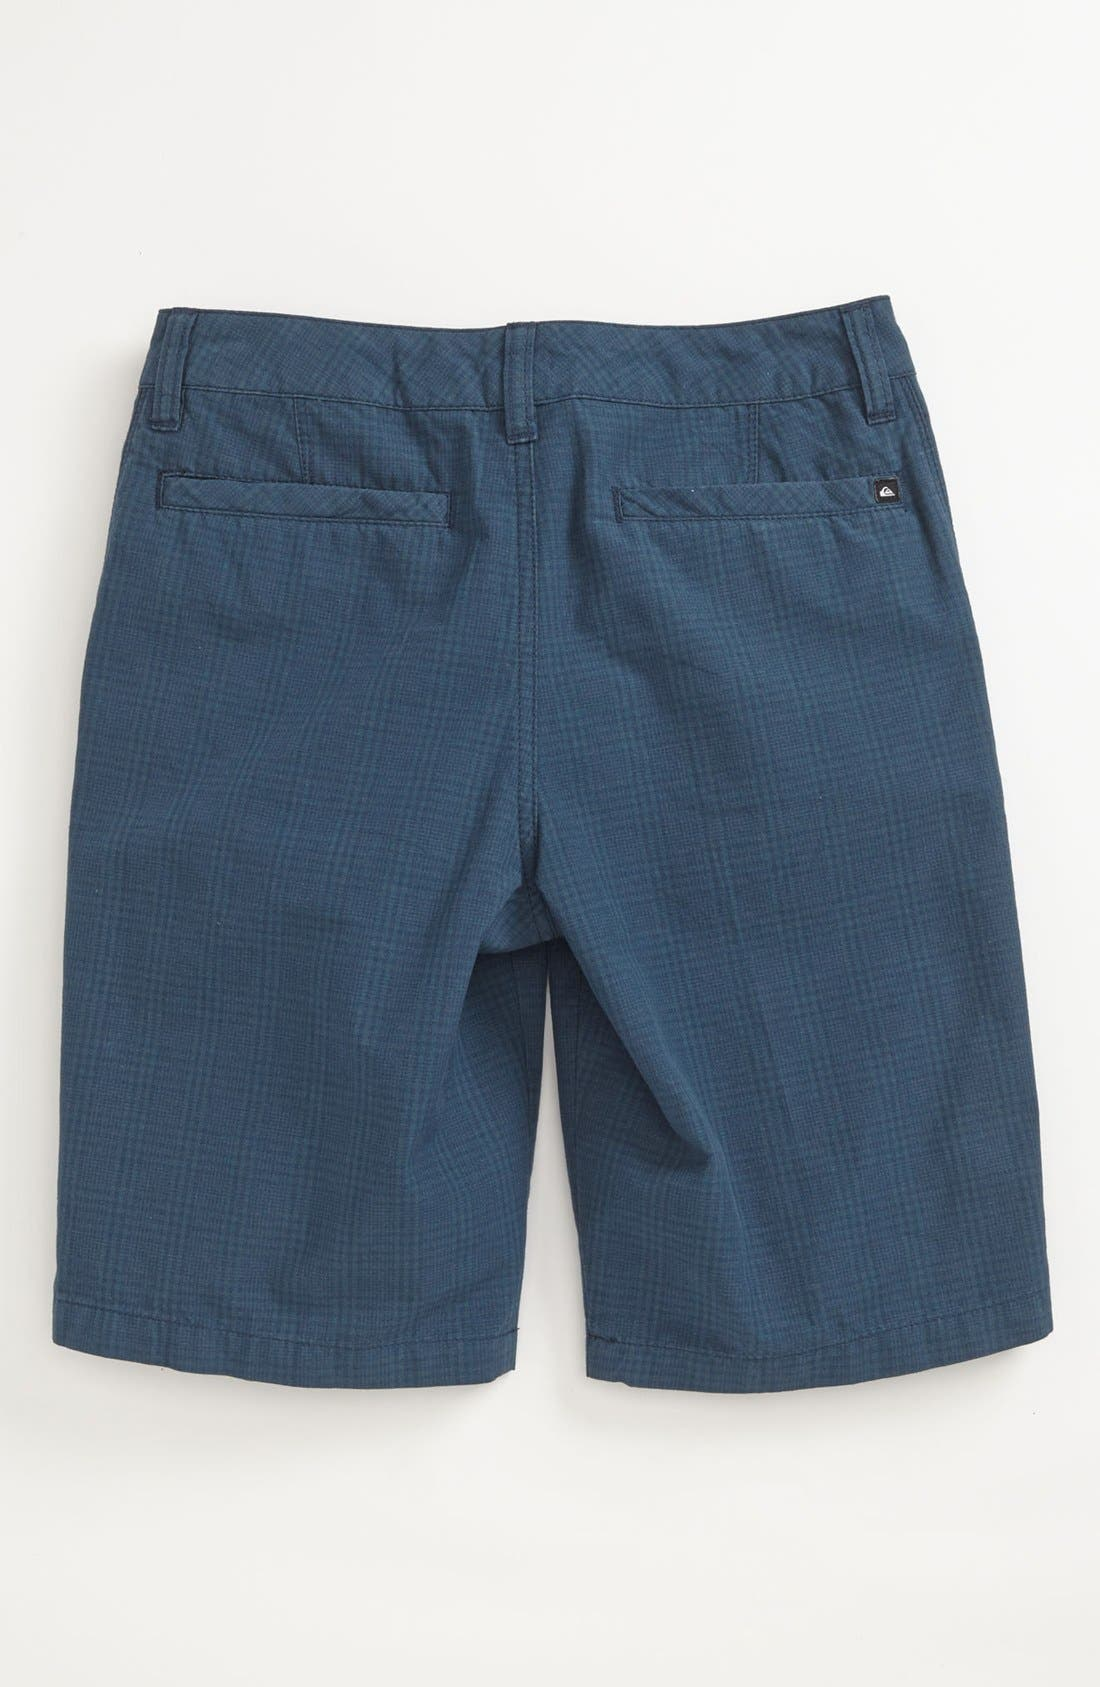 Alternate Image 2  - Quiksilver 'Agenda' Shorts (Little Boys) (Online Only)